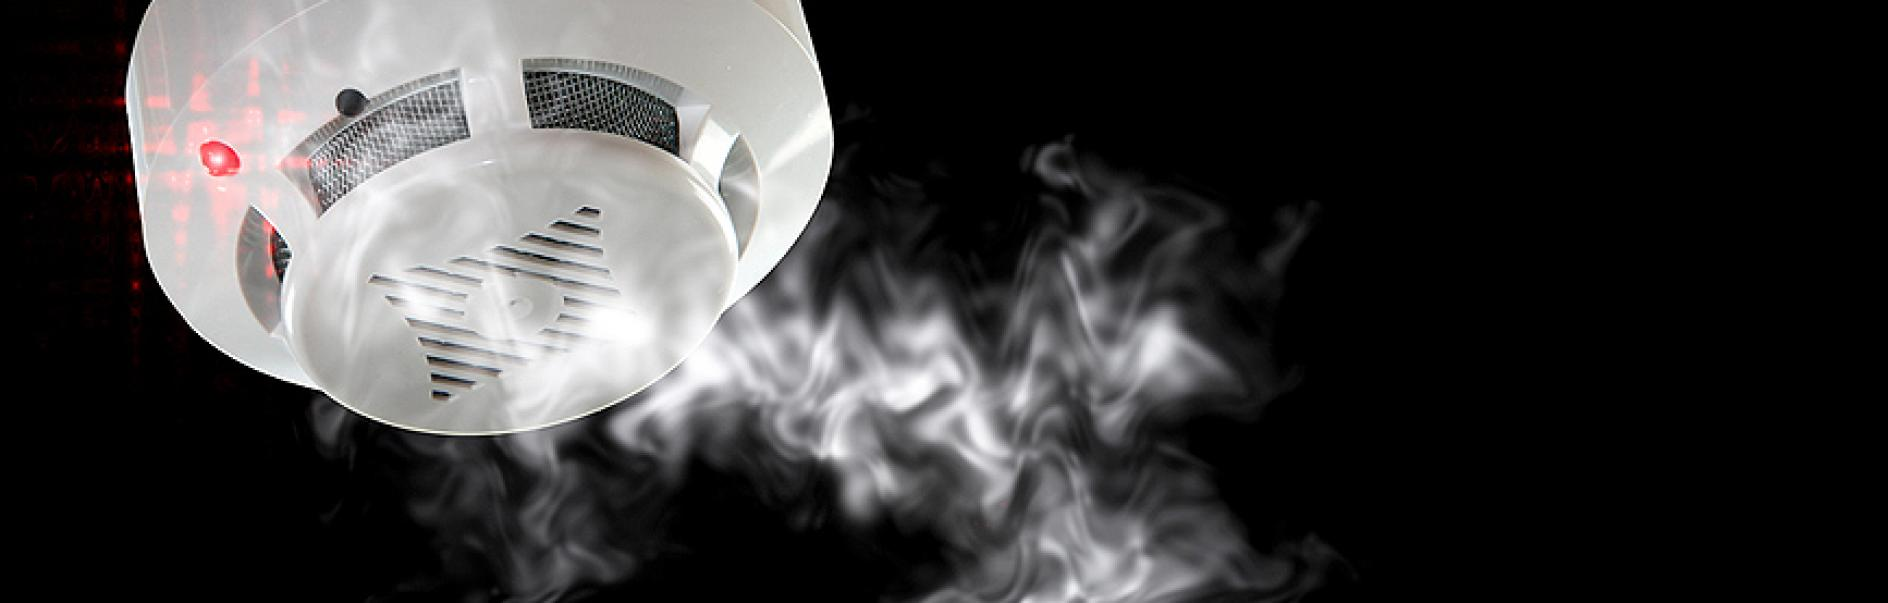 How To Install A Smoke Alarm Wiring House For Alarms